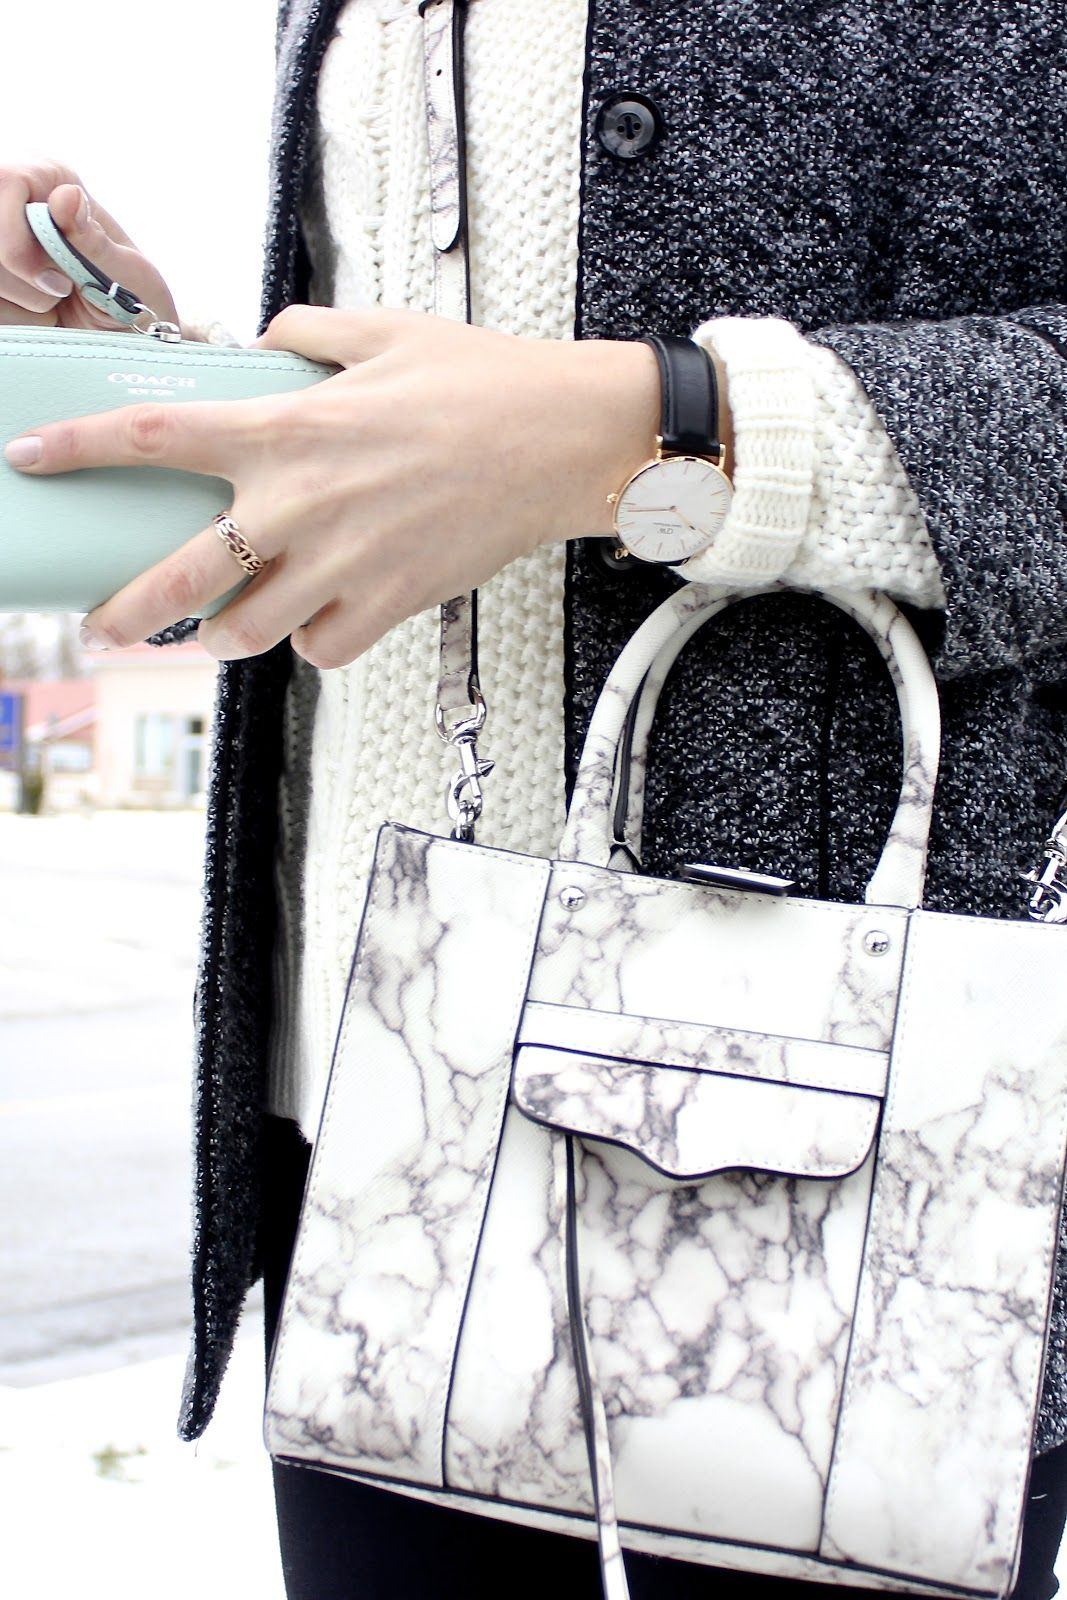 fdcf941e8 Rebecca Minkoff marble M.A.B. mini tote, Daniel Wellington watch, mint  coach wallet, Sheinside coat